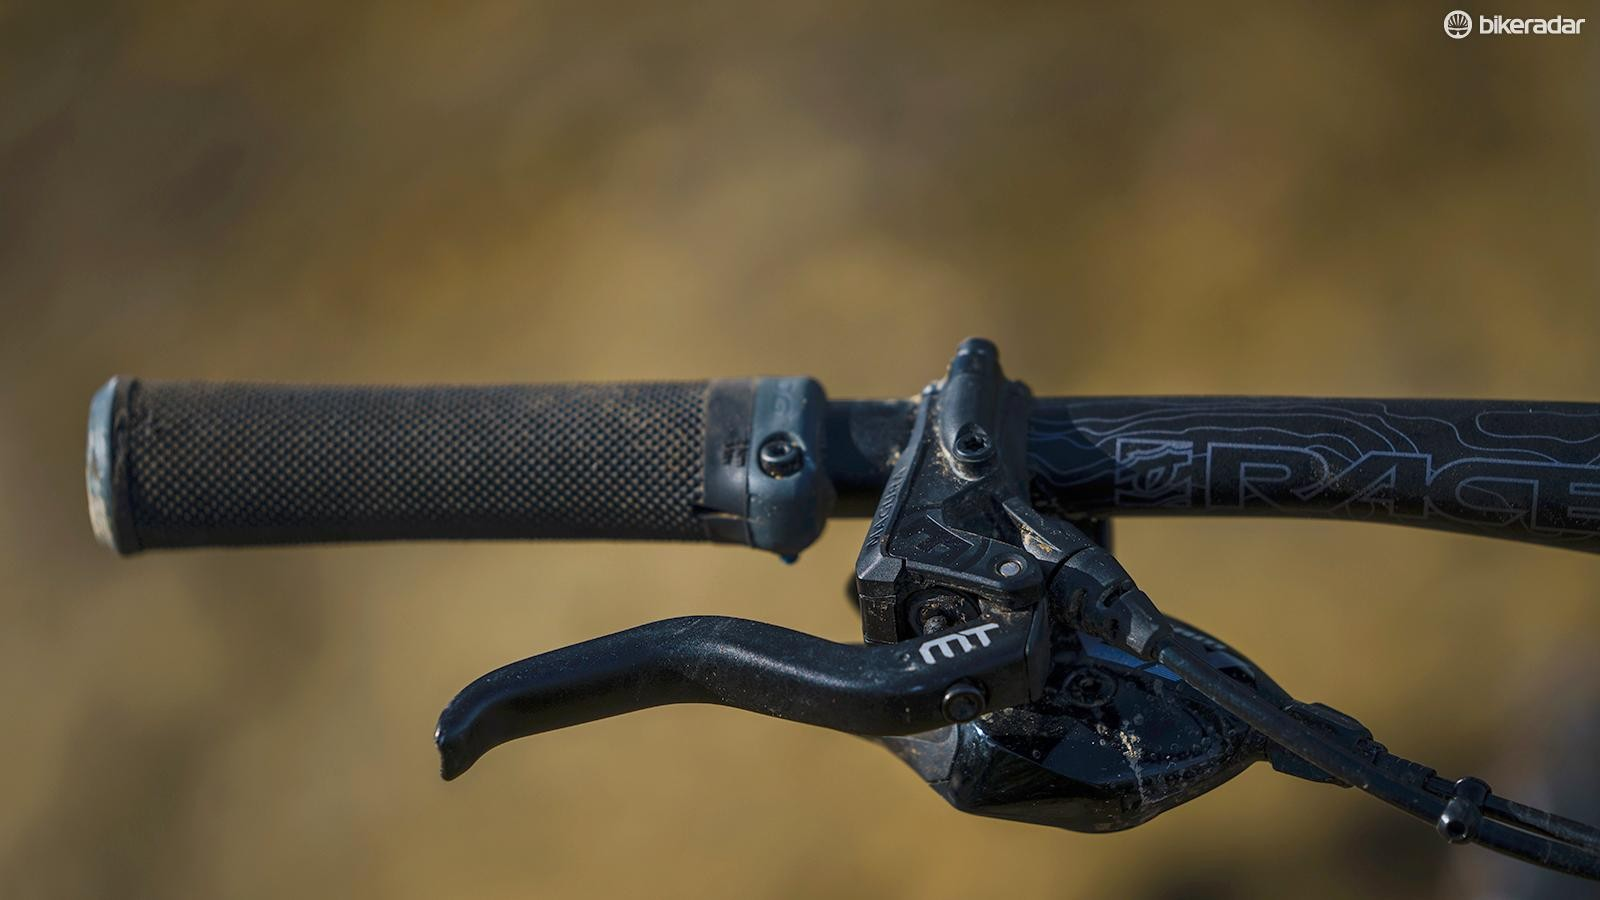 Not everyone will get on with Magura's potently powerful MT5 brakes